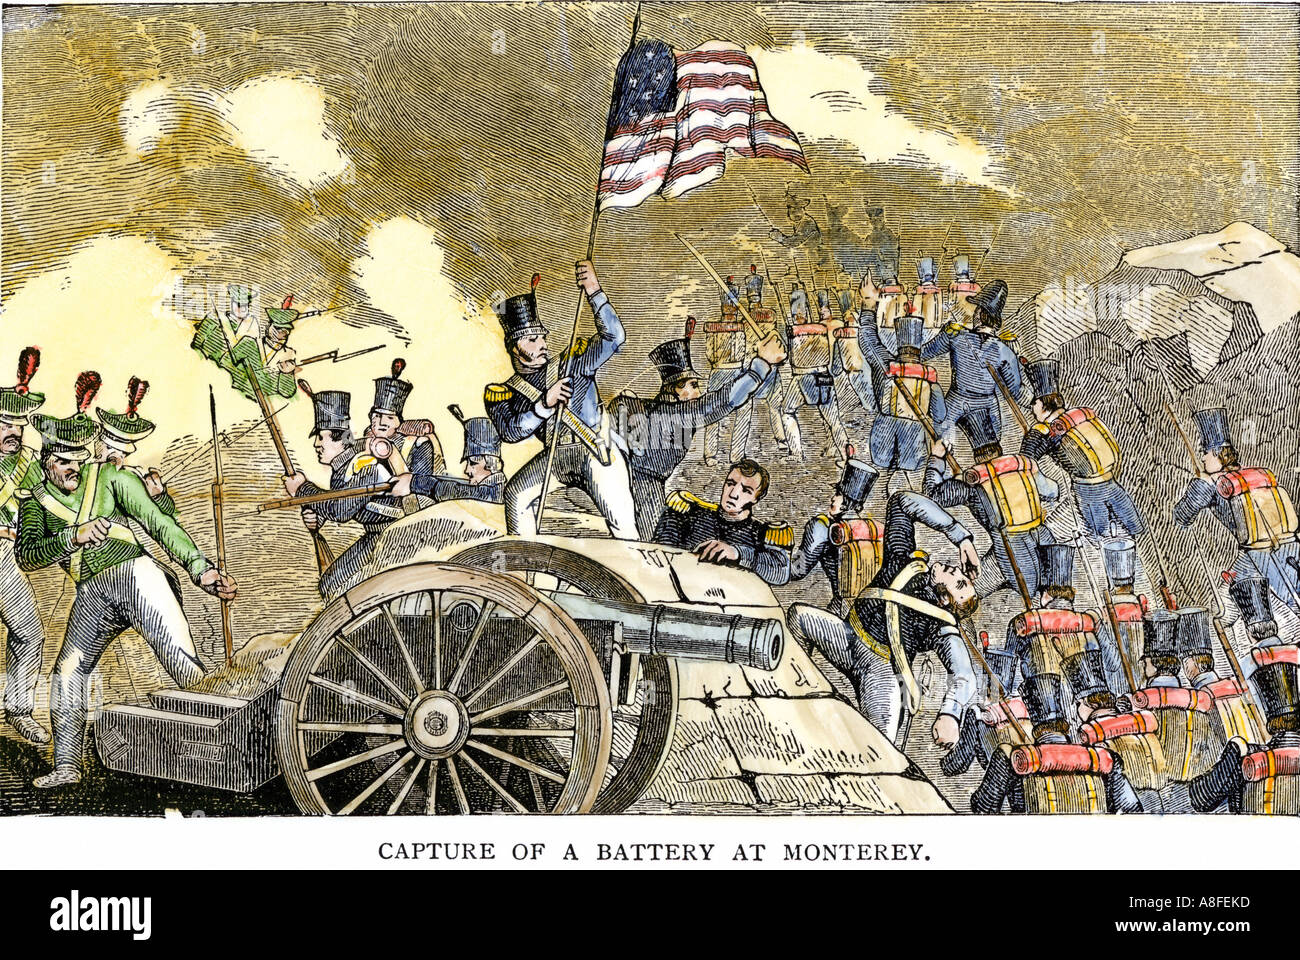 Mexican artillery captured by General Zachary Taylor at the Battle of Monterey in the US Mexican War 1846. Hand-colored woodcut - Stock Image